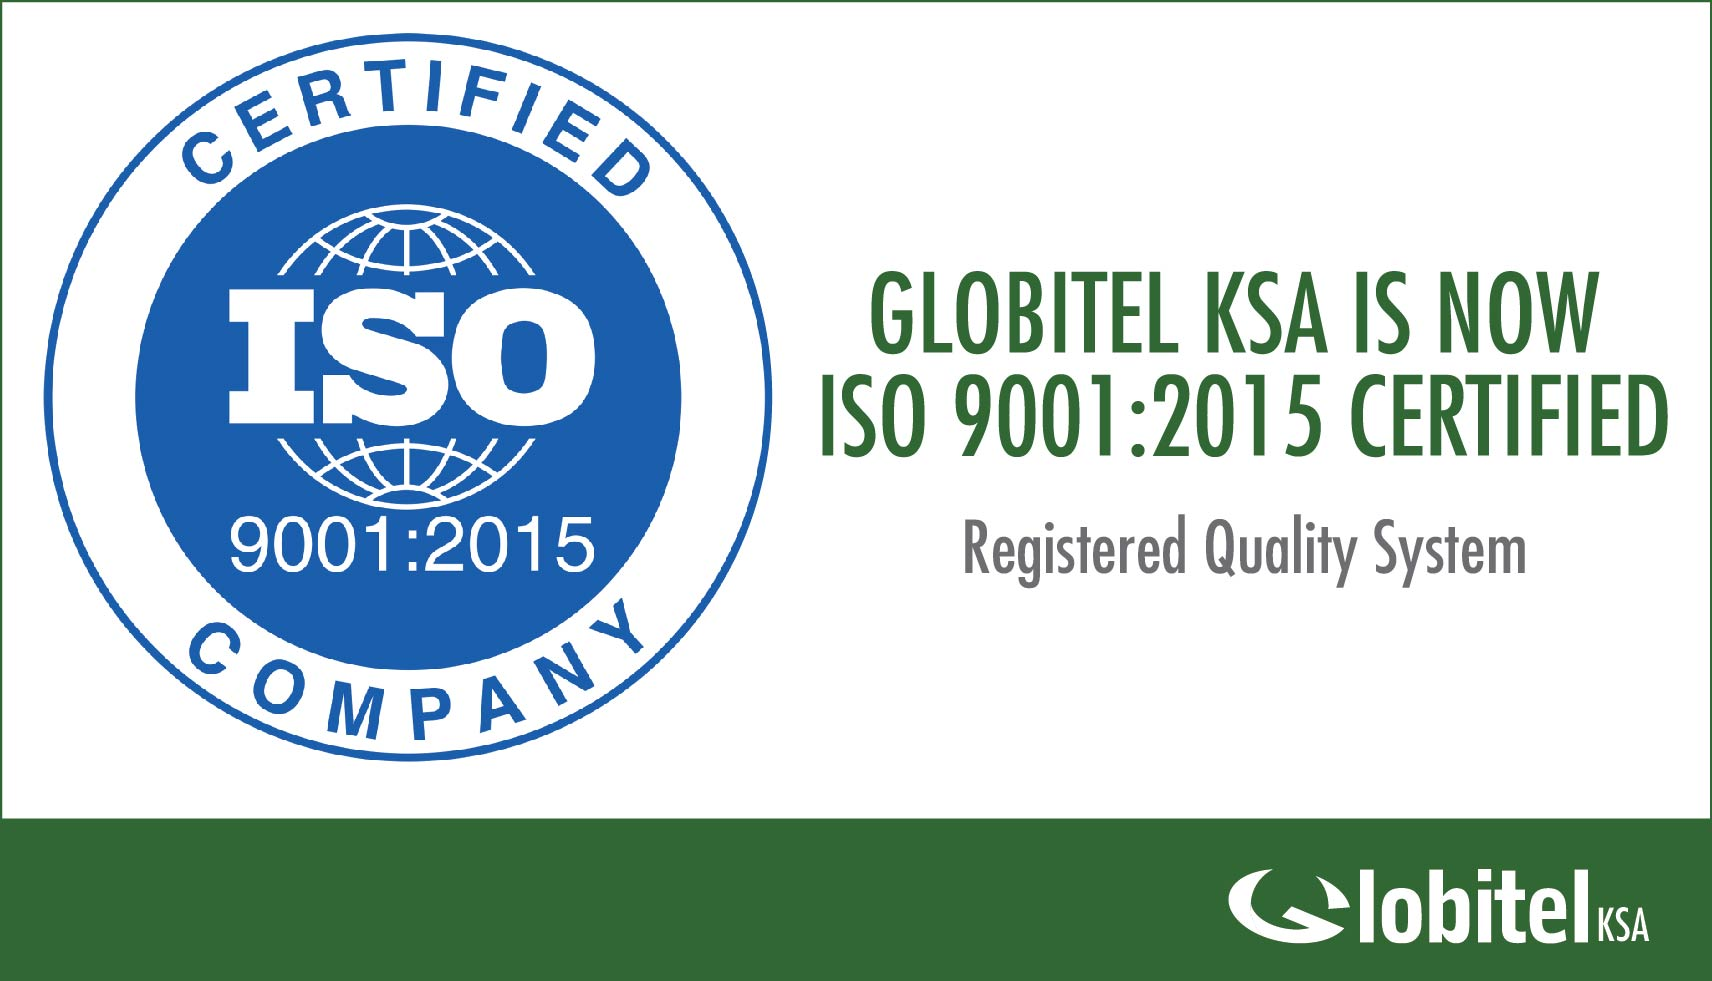 iso certification for globitel KSA